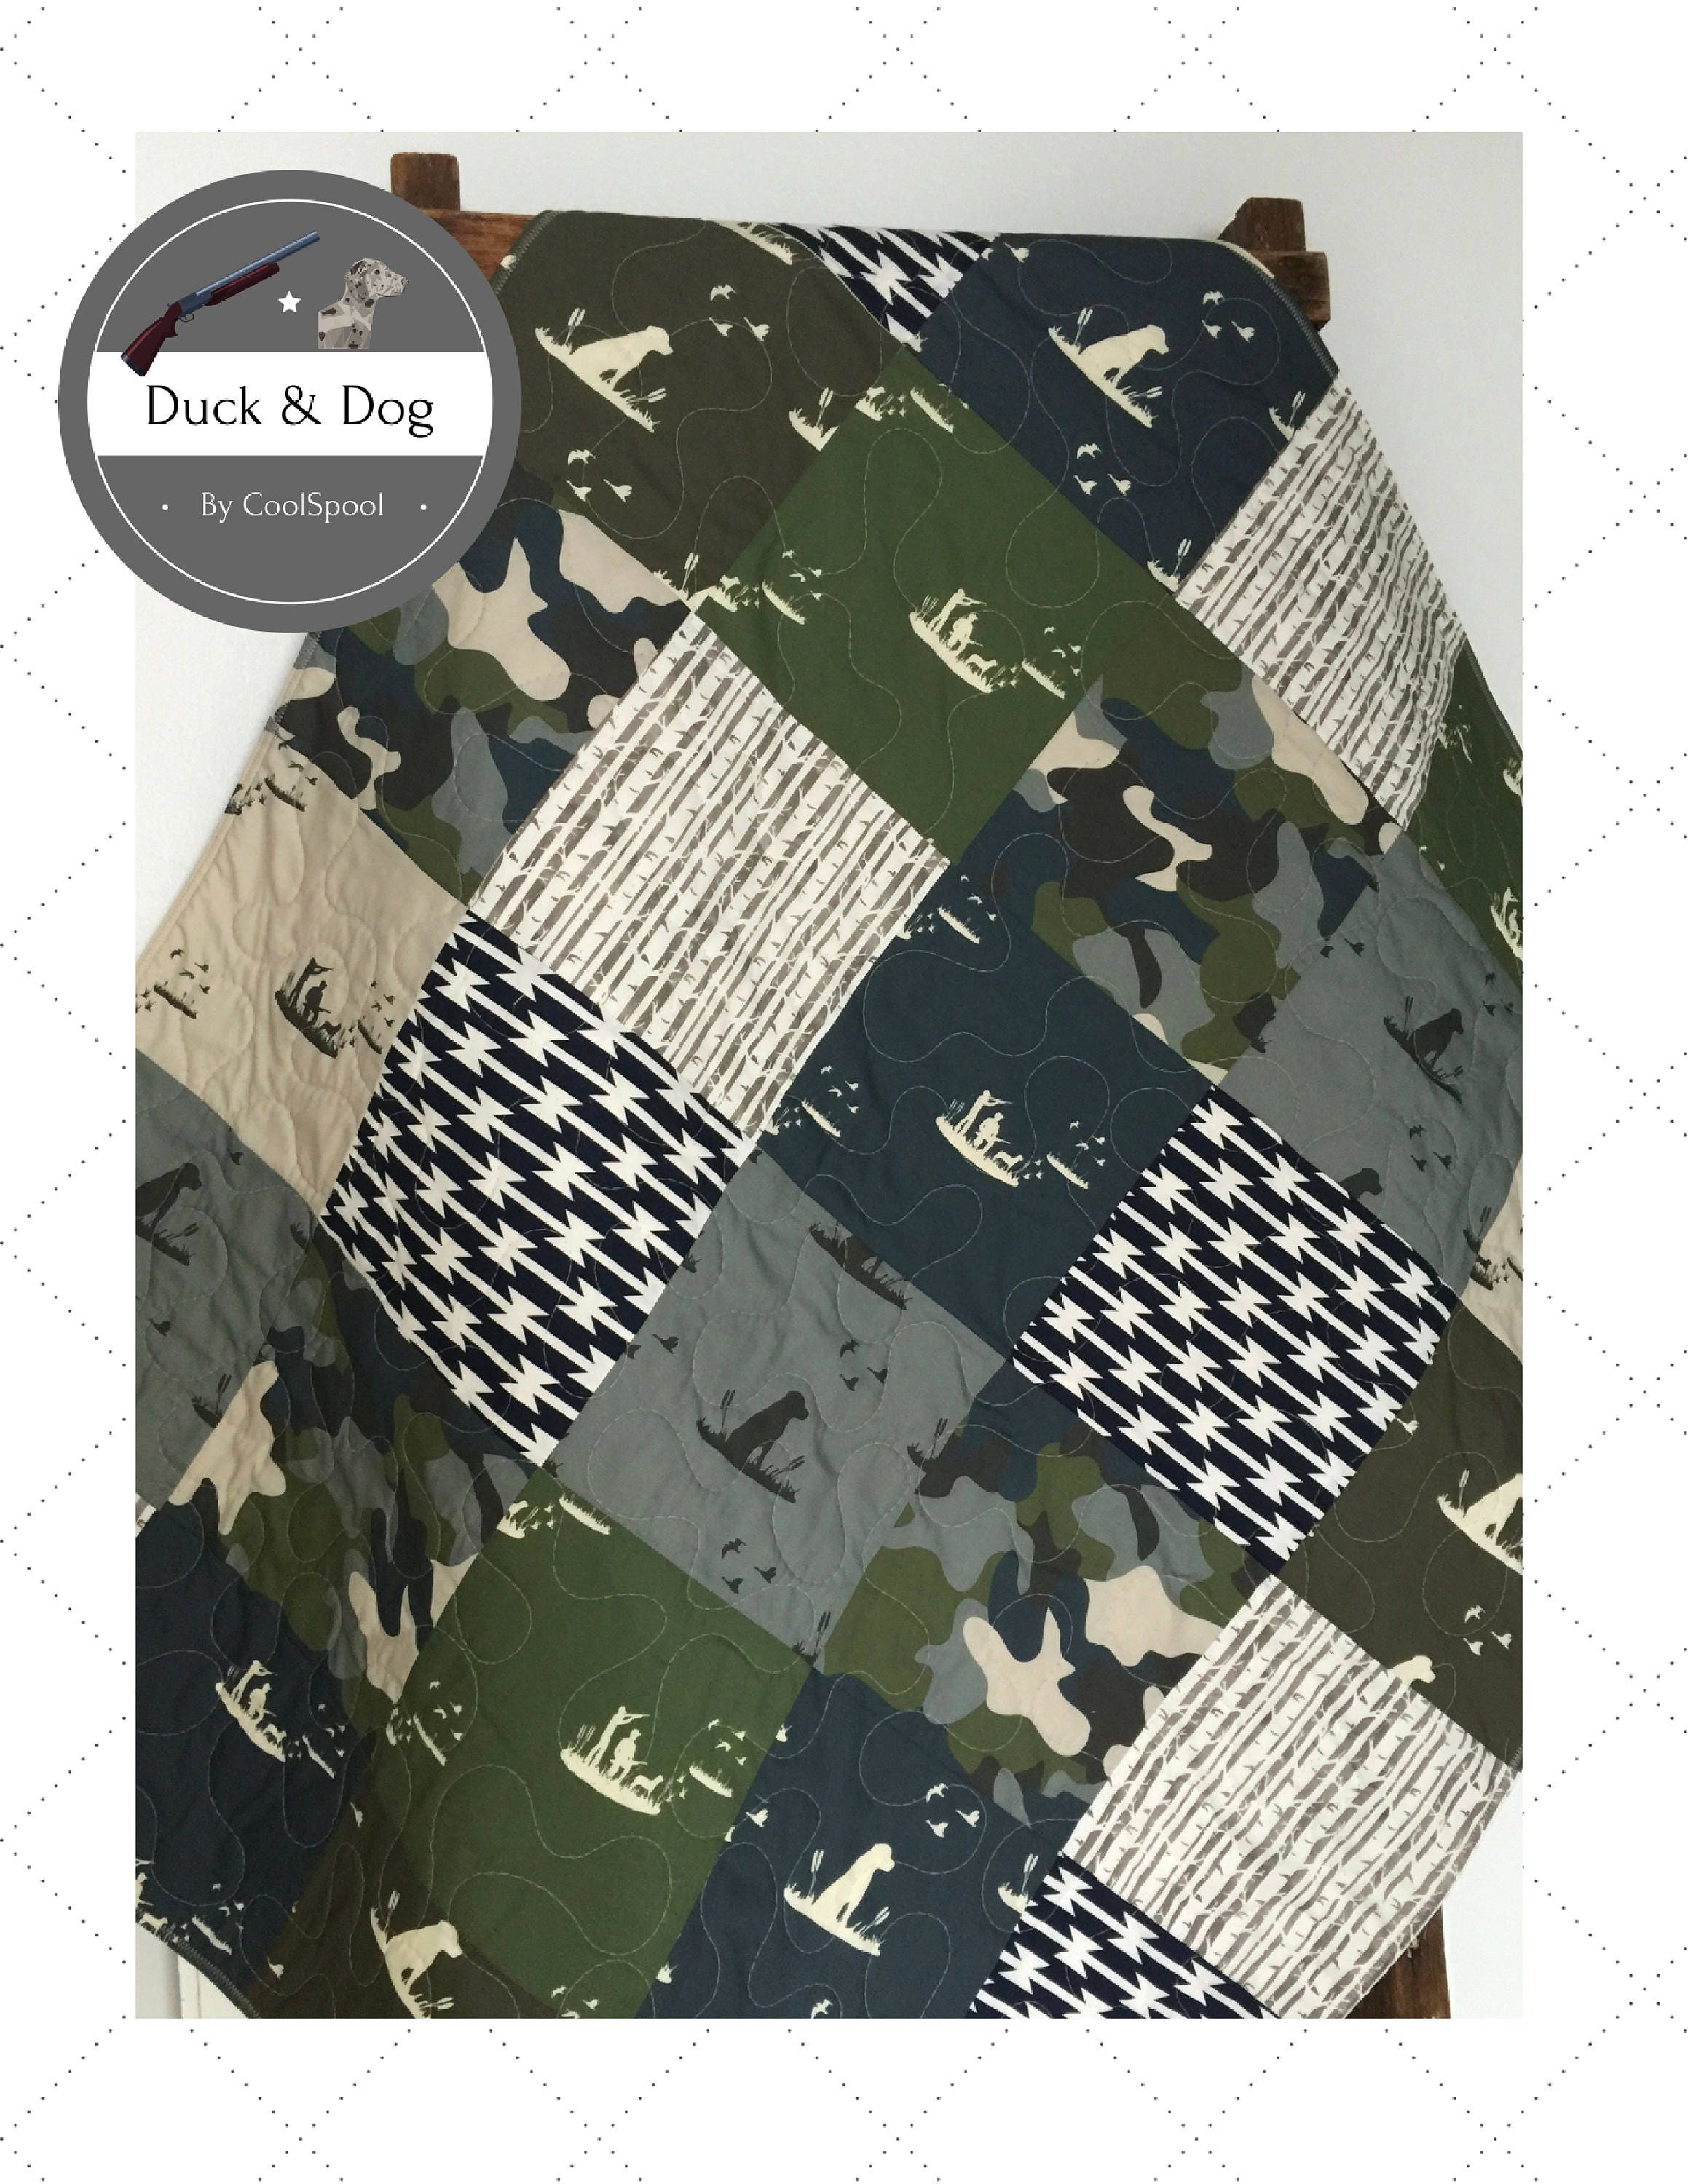 Dog crib for sale philippines - Baby Quilt Boy Crib Bedding Duck Hunting Baby Bedding Ducks Dogs And Ducks Camo Nursery Baby Blanket Boy Home And Living Dog Duck